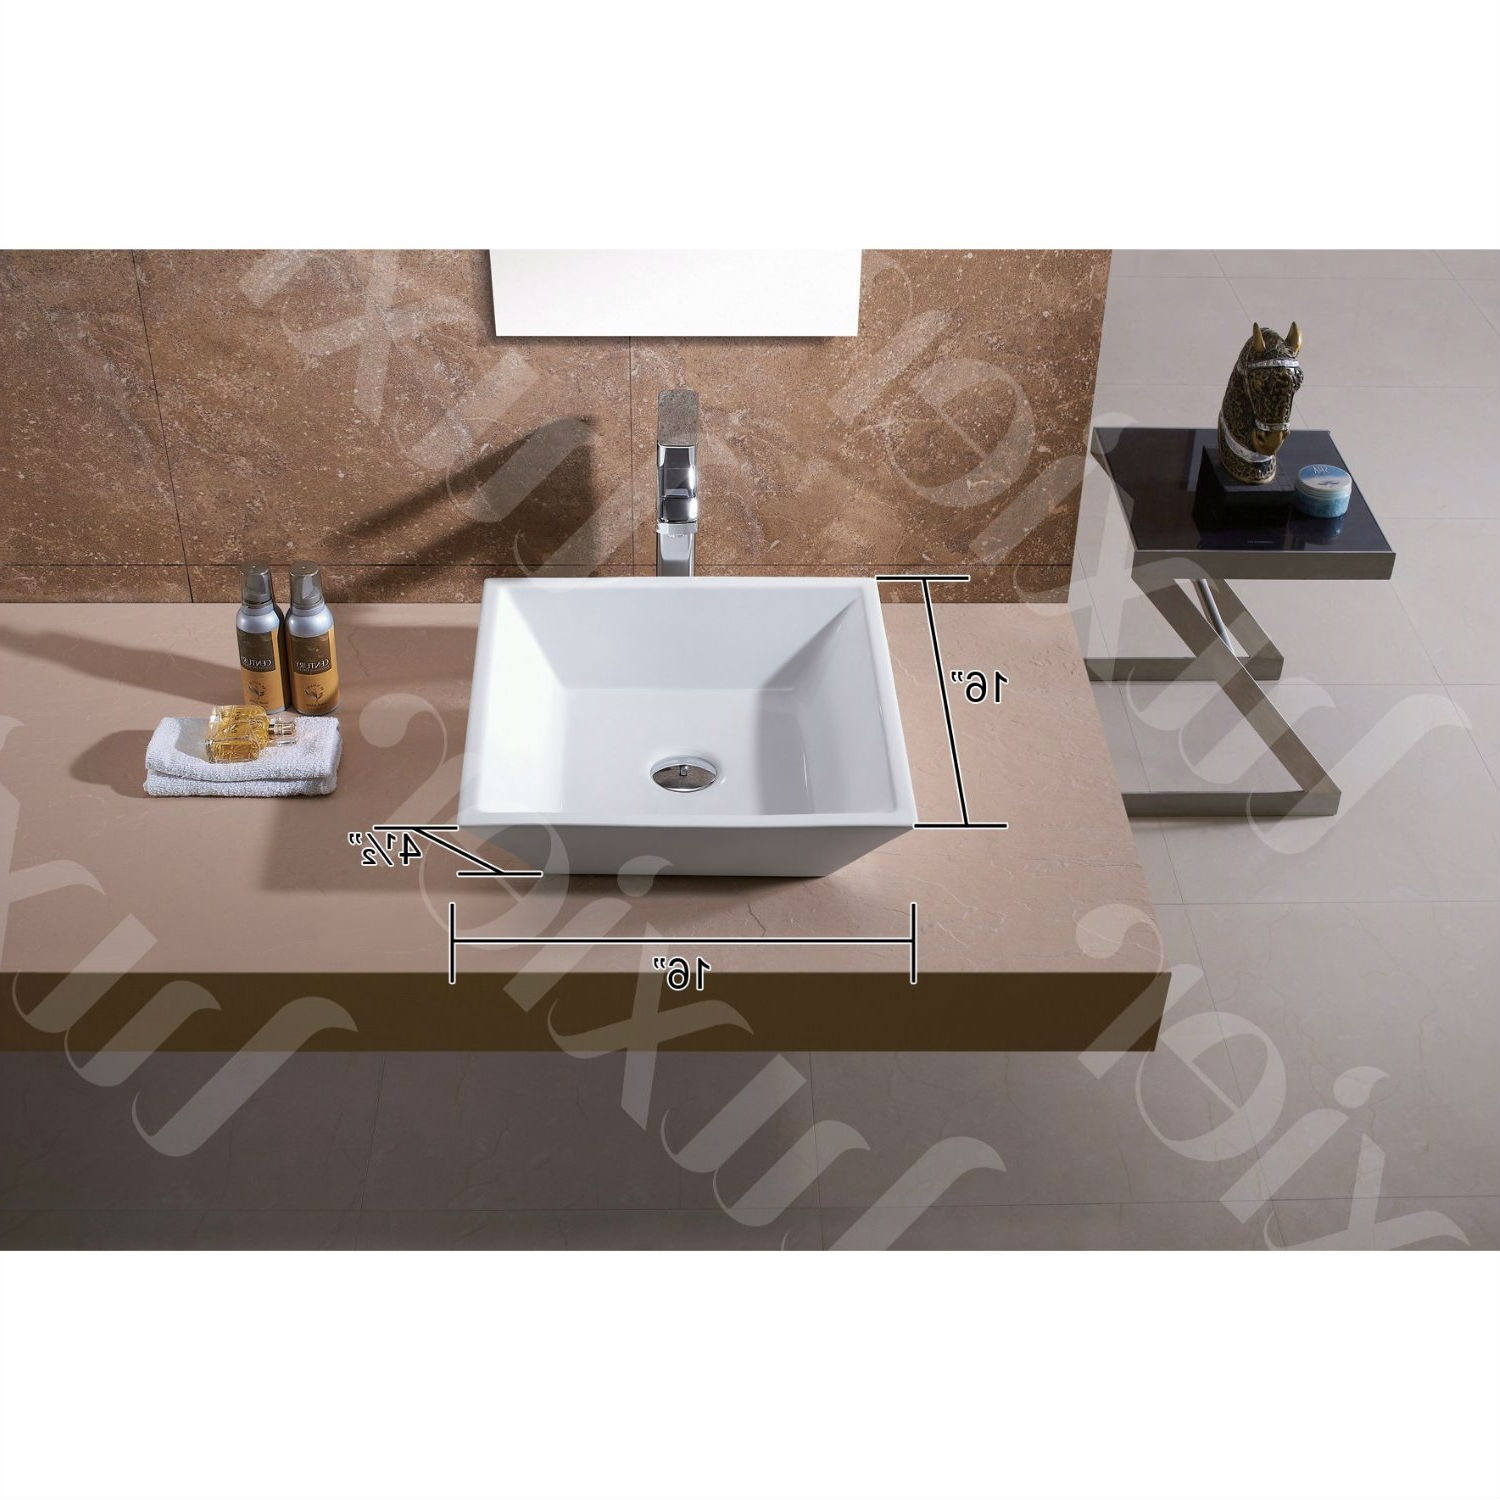 16 Inch Vanity Sink Part - 44: Retail Price: $129.00